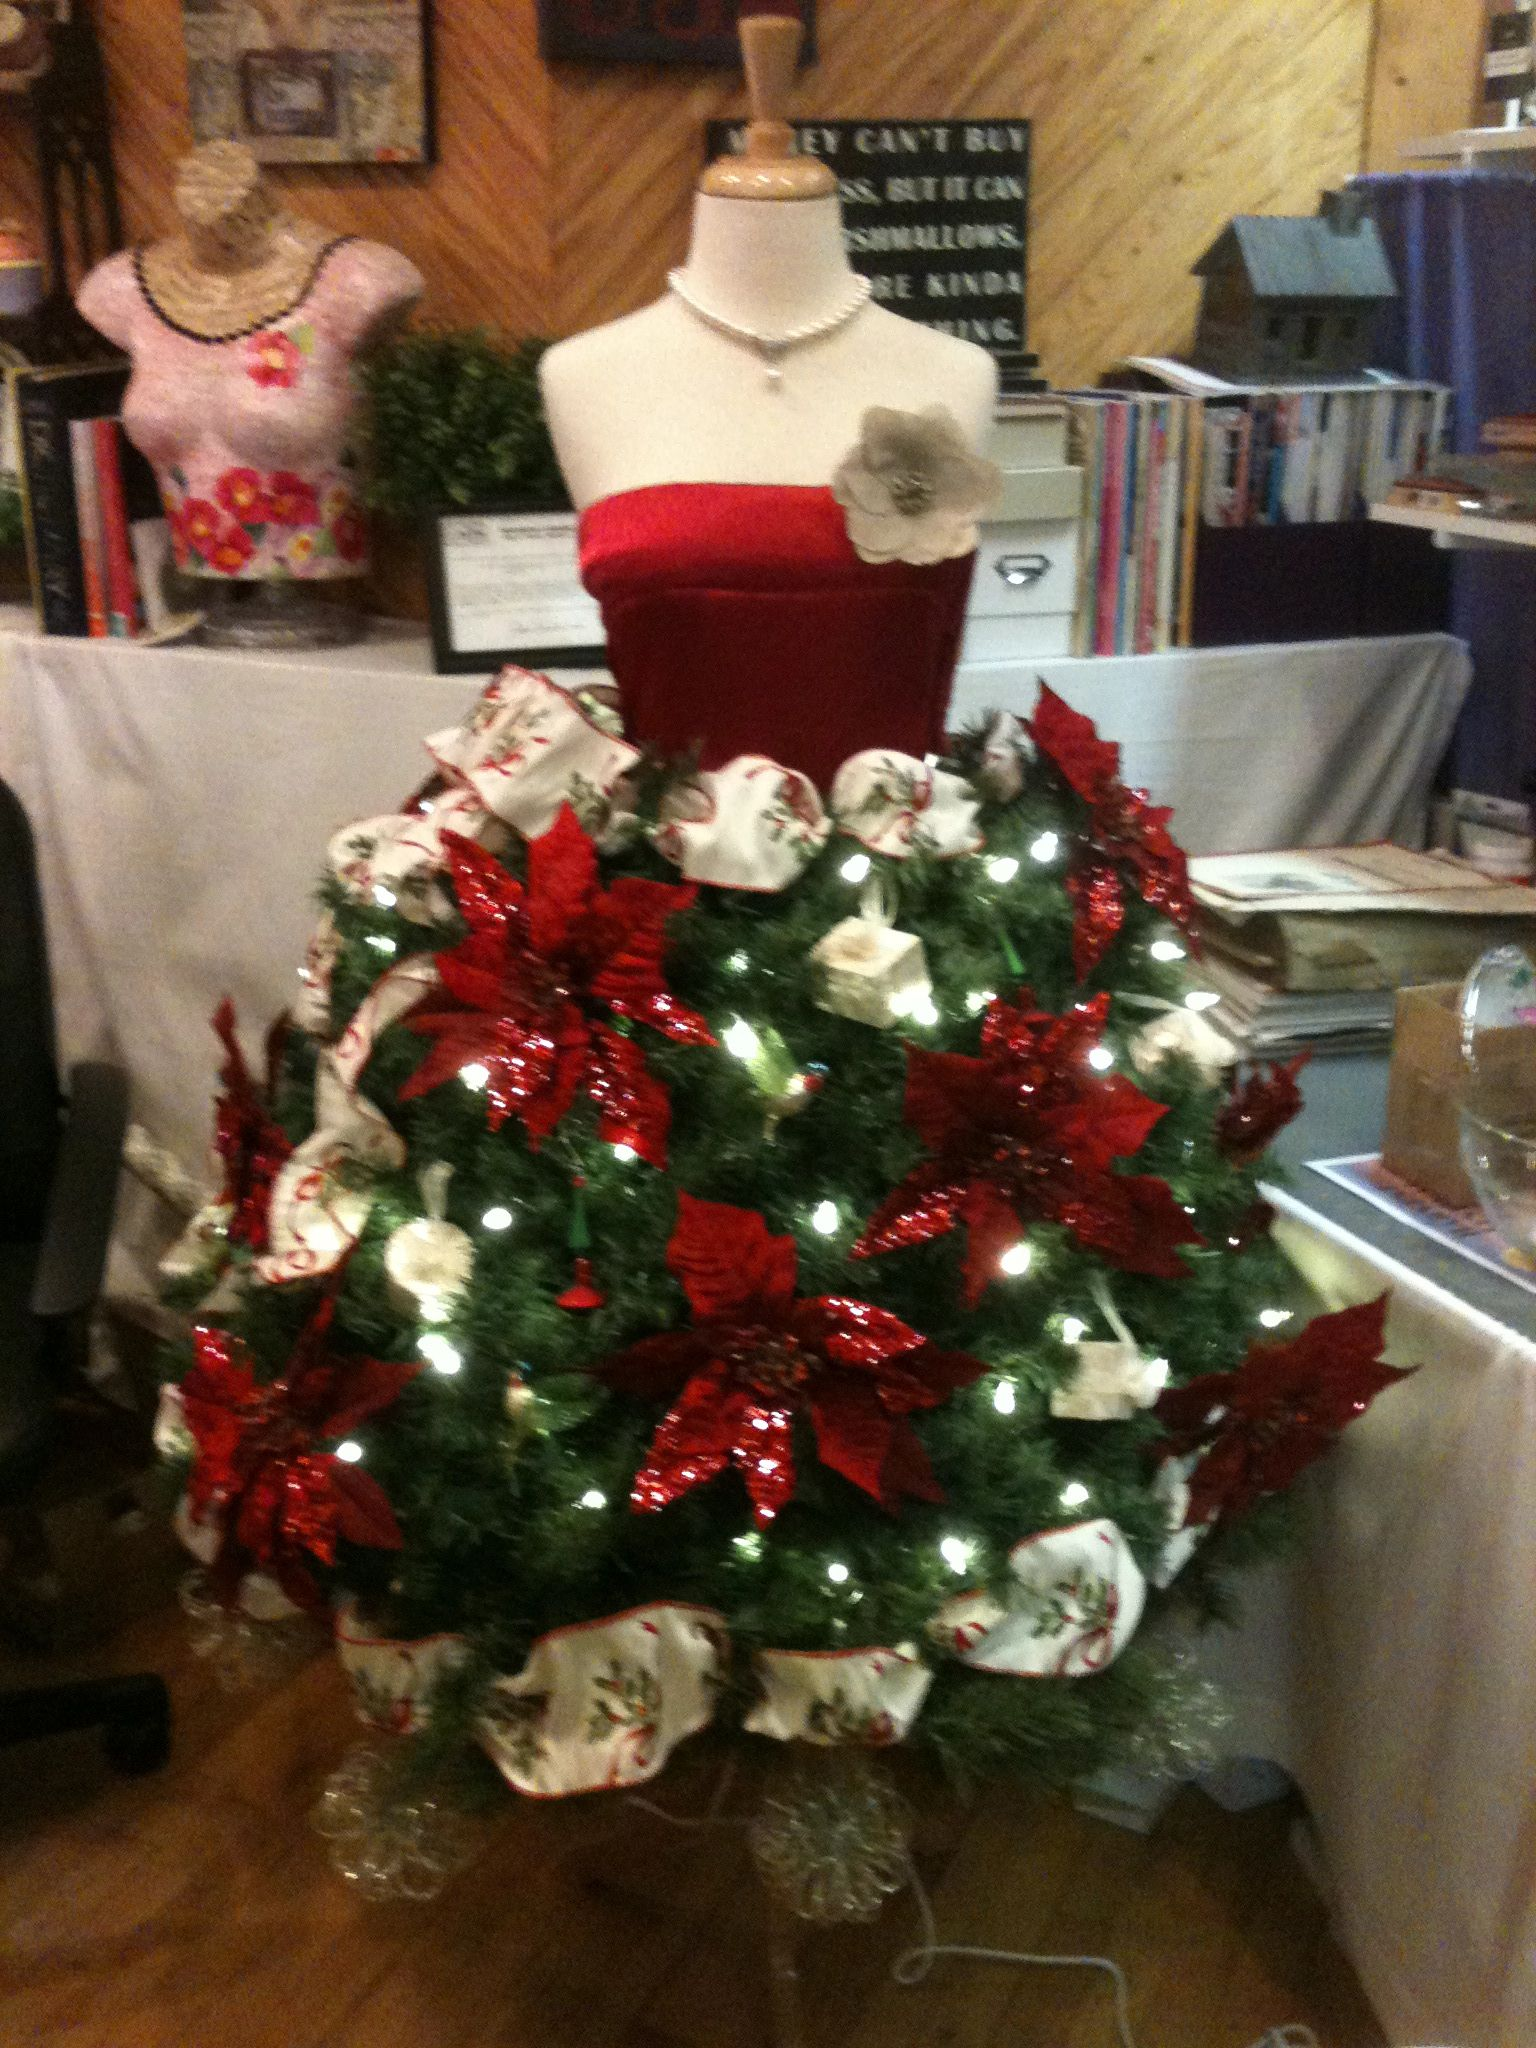 The Whoot Mannequin Christmas Tree Christmas Tree Dress Dress Form Christmas Tree